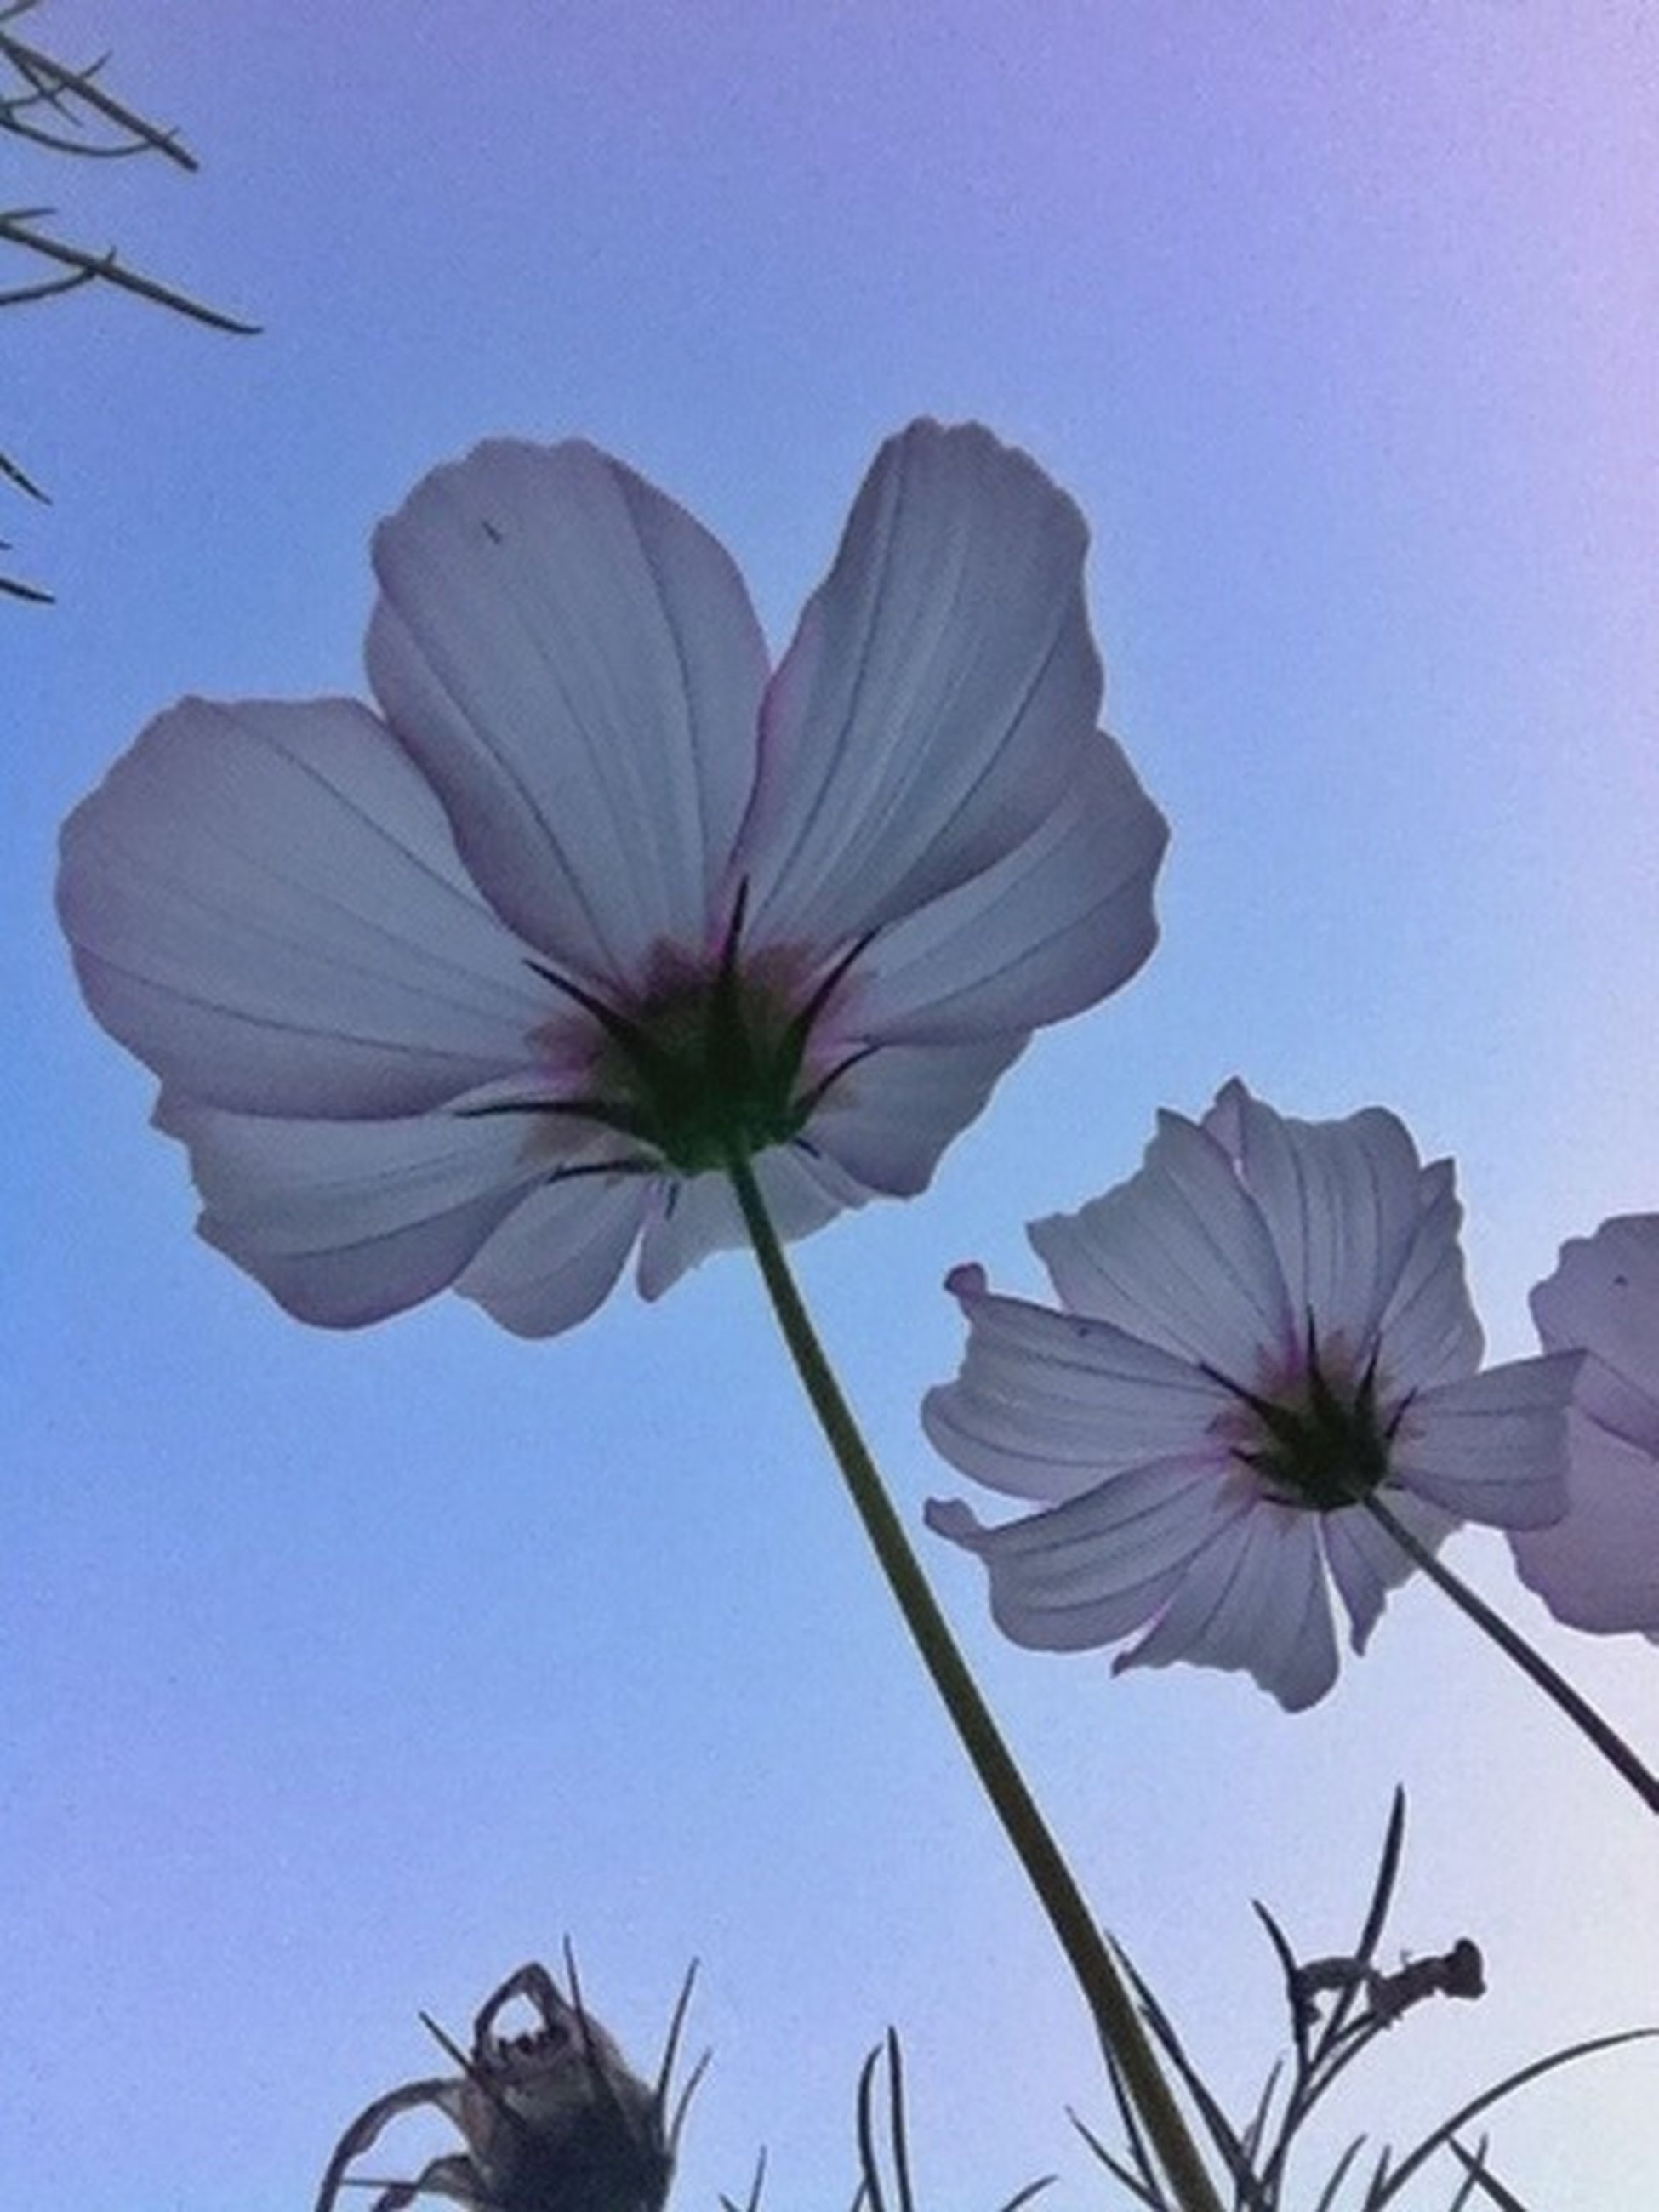 flower, fragility, petal, low angle view, freshness, clear sky, flower head, growth, beauty in nature, nature, stem, blue, copy space, close-up, plant, blooming, no people, single flower, day, sky